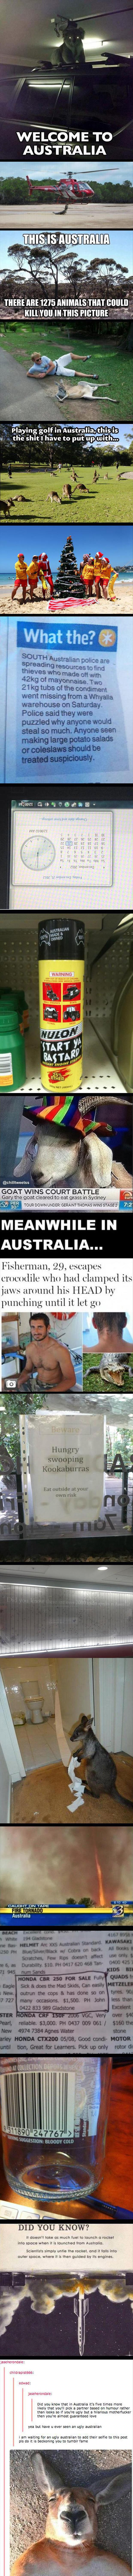 Meanwhile In Australia – 21 Pics